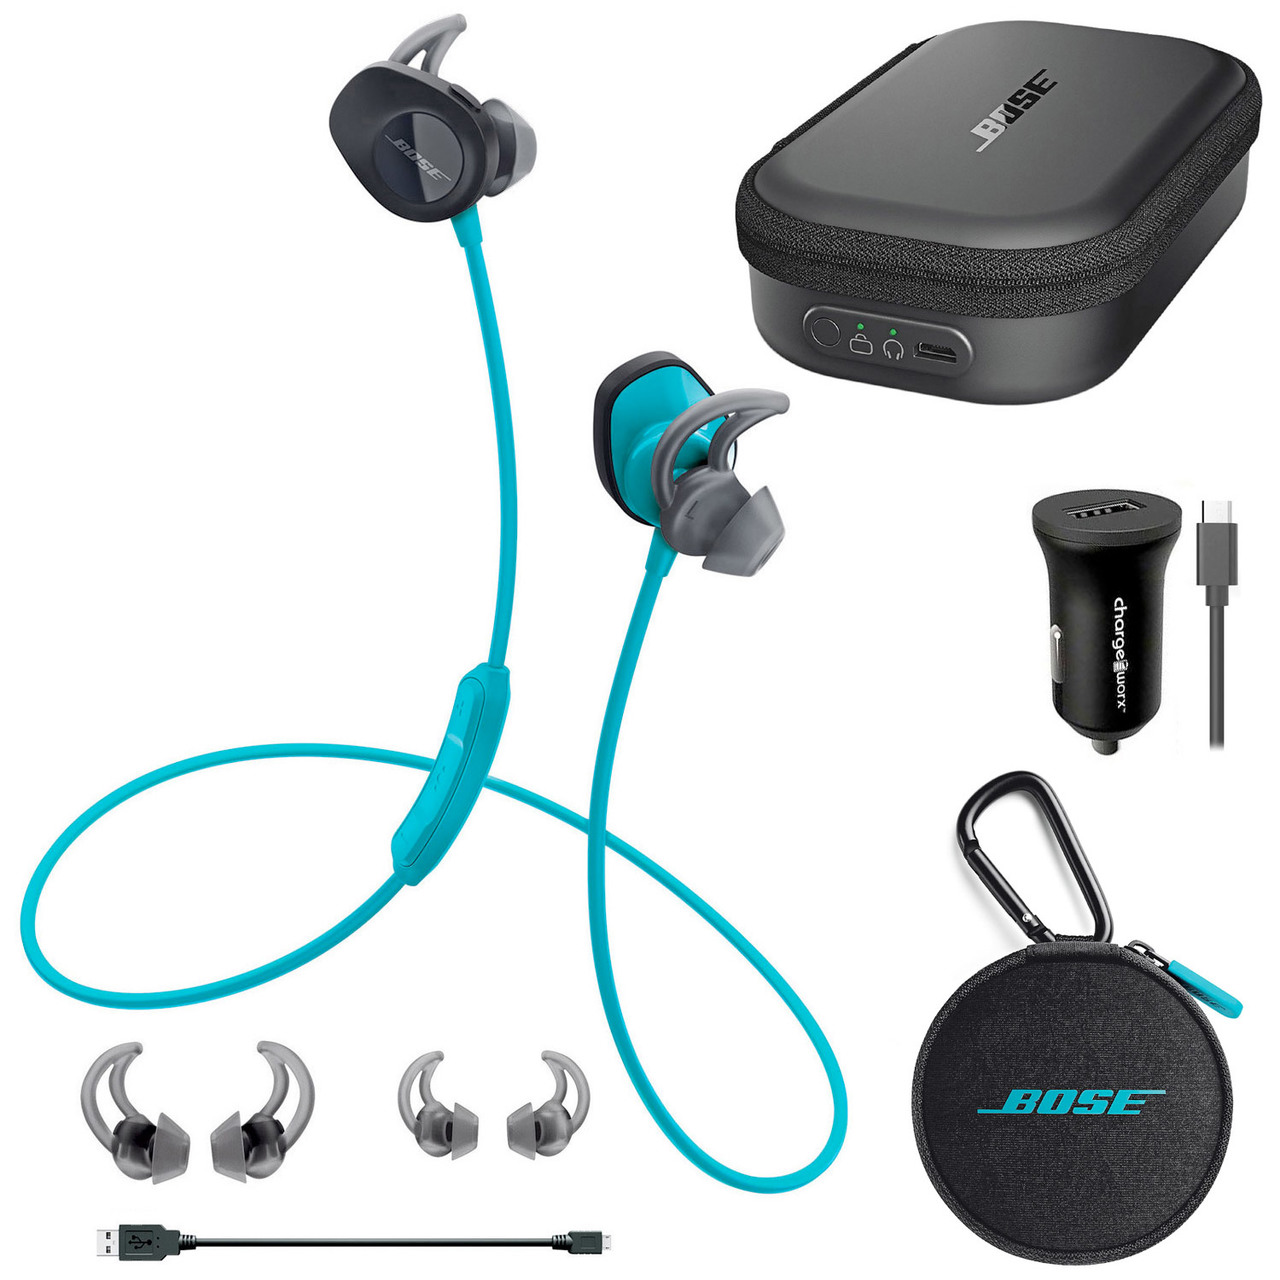 Bose | SoundSport Wireless In-Ear Headphone Bundle w/ Charging ...